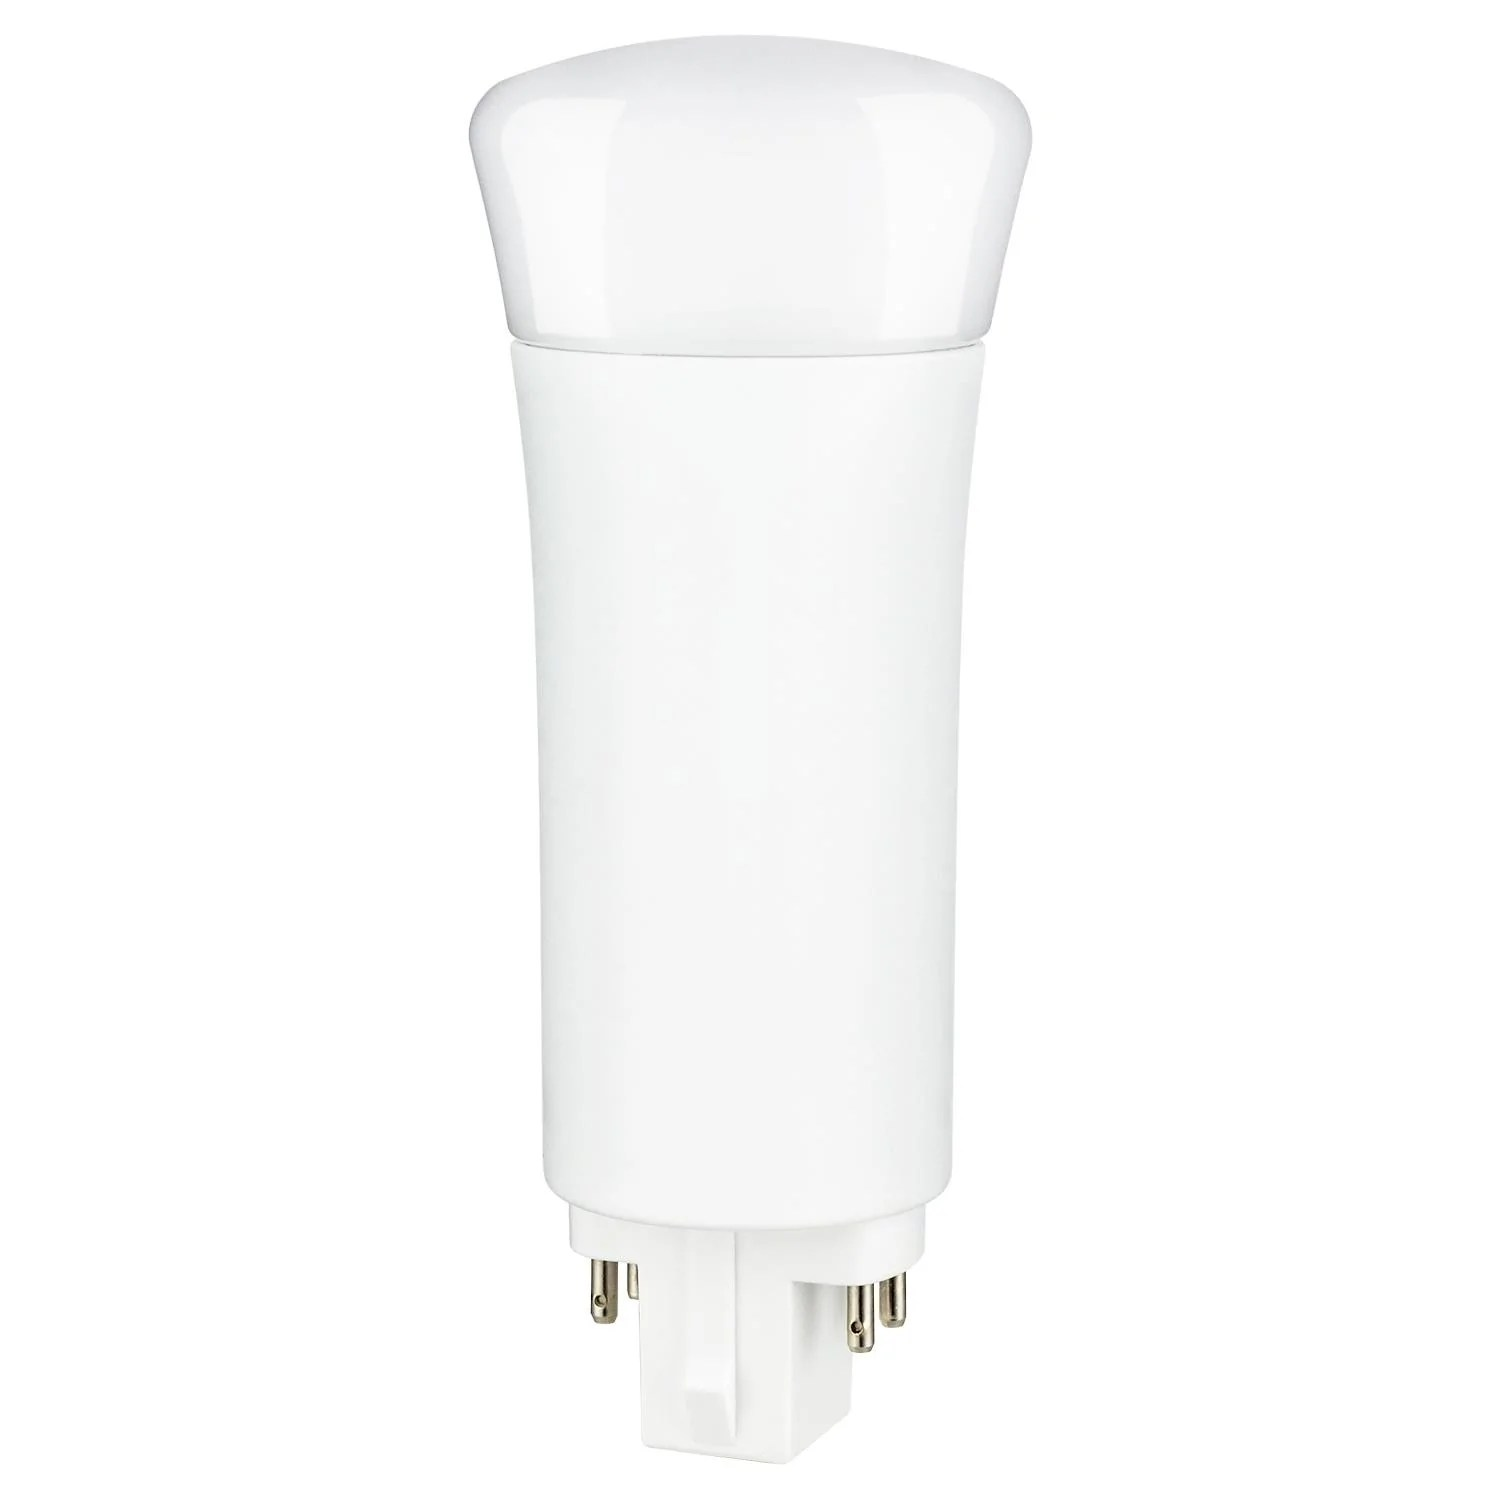 hight resolution of sunlite 88211 su led 9w plv lamps g24q base 3500k neutral white bulbamerica